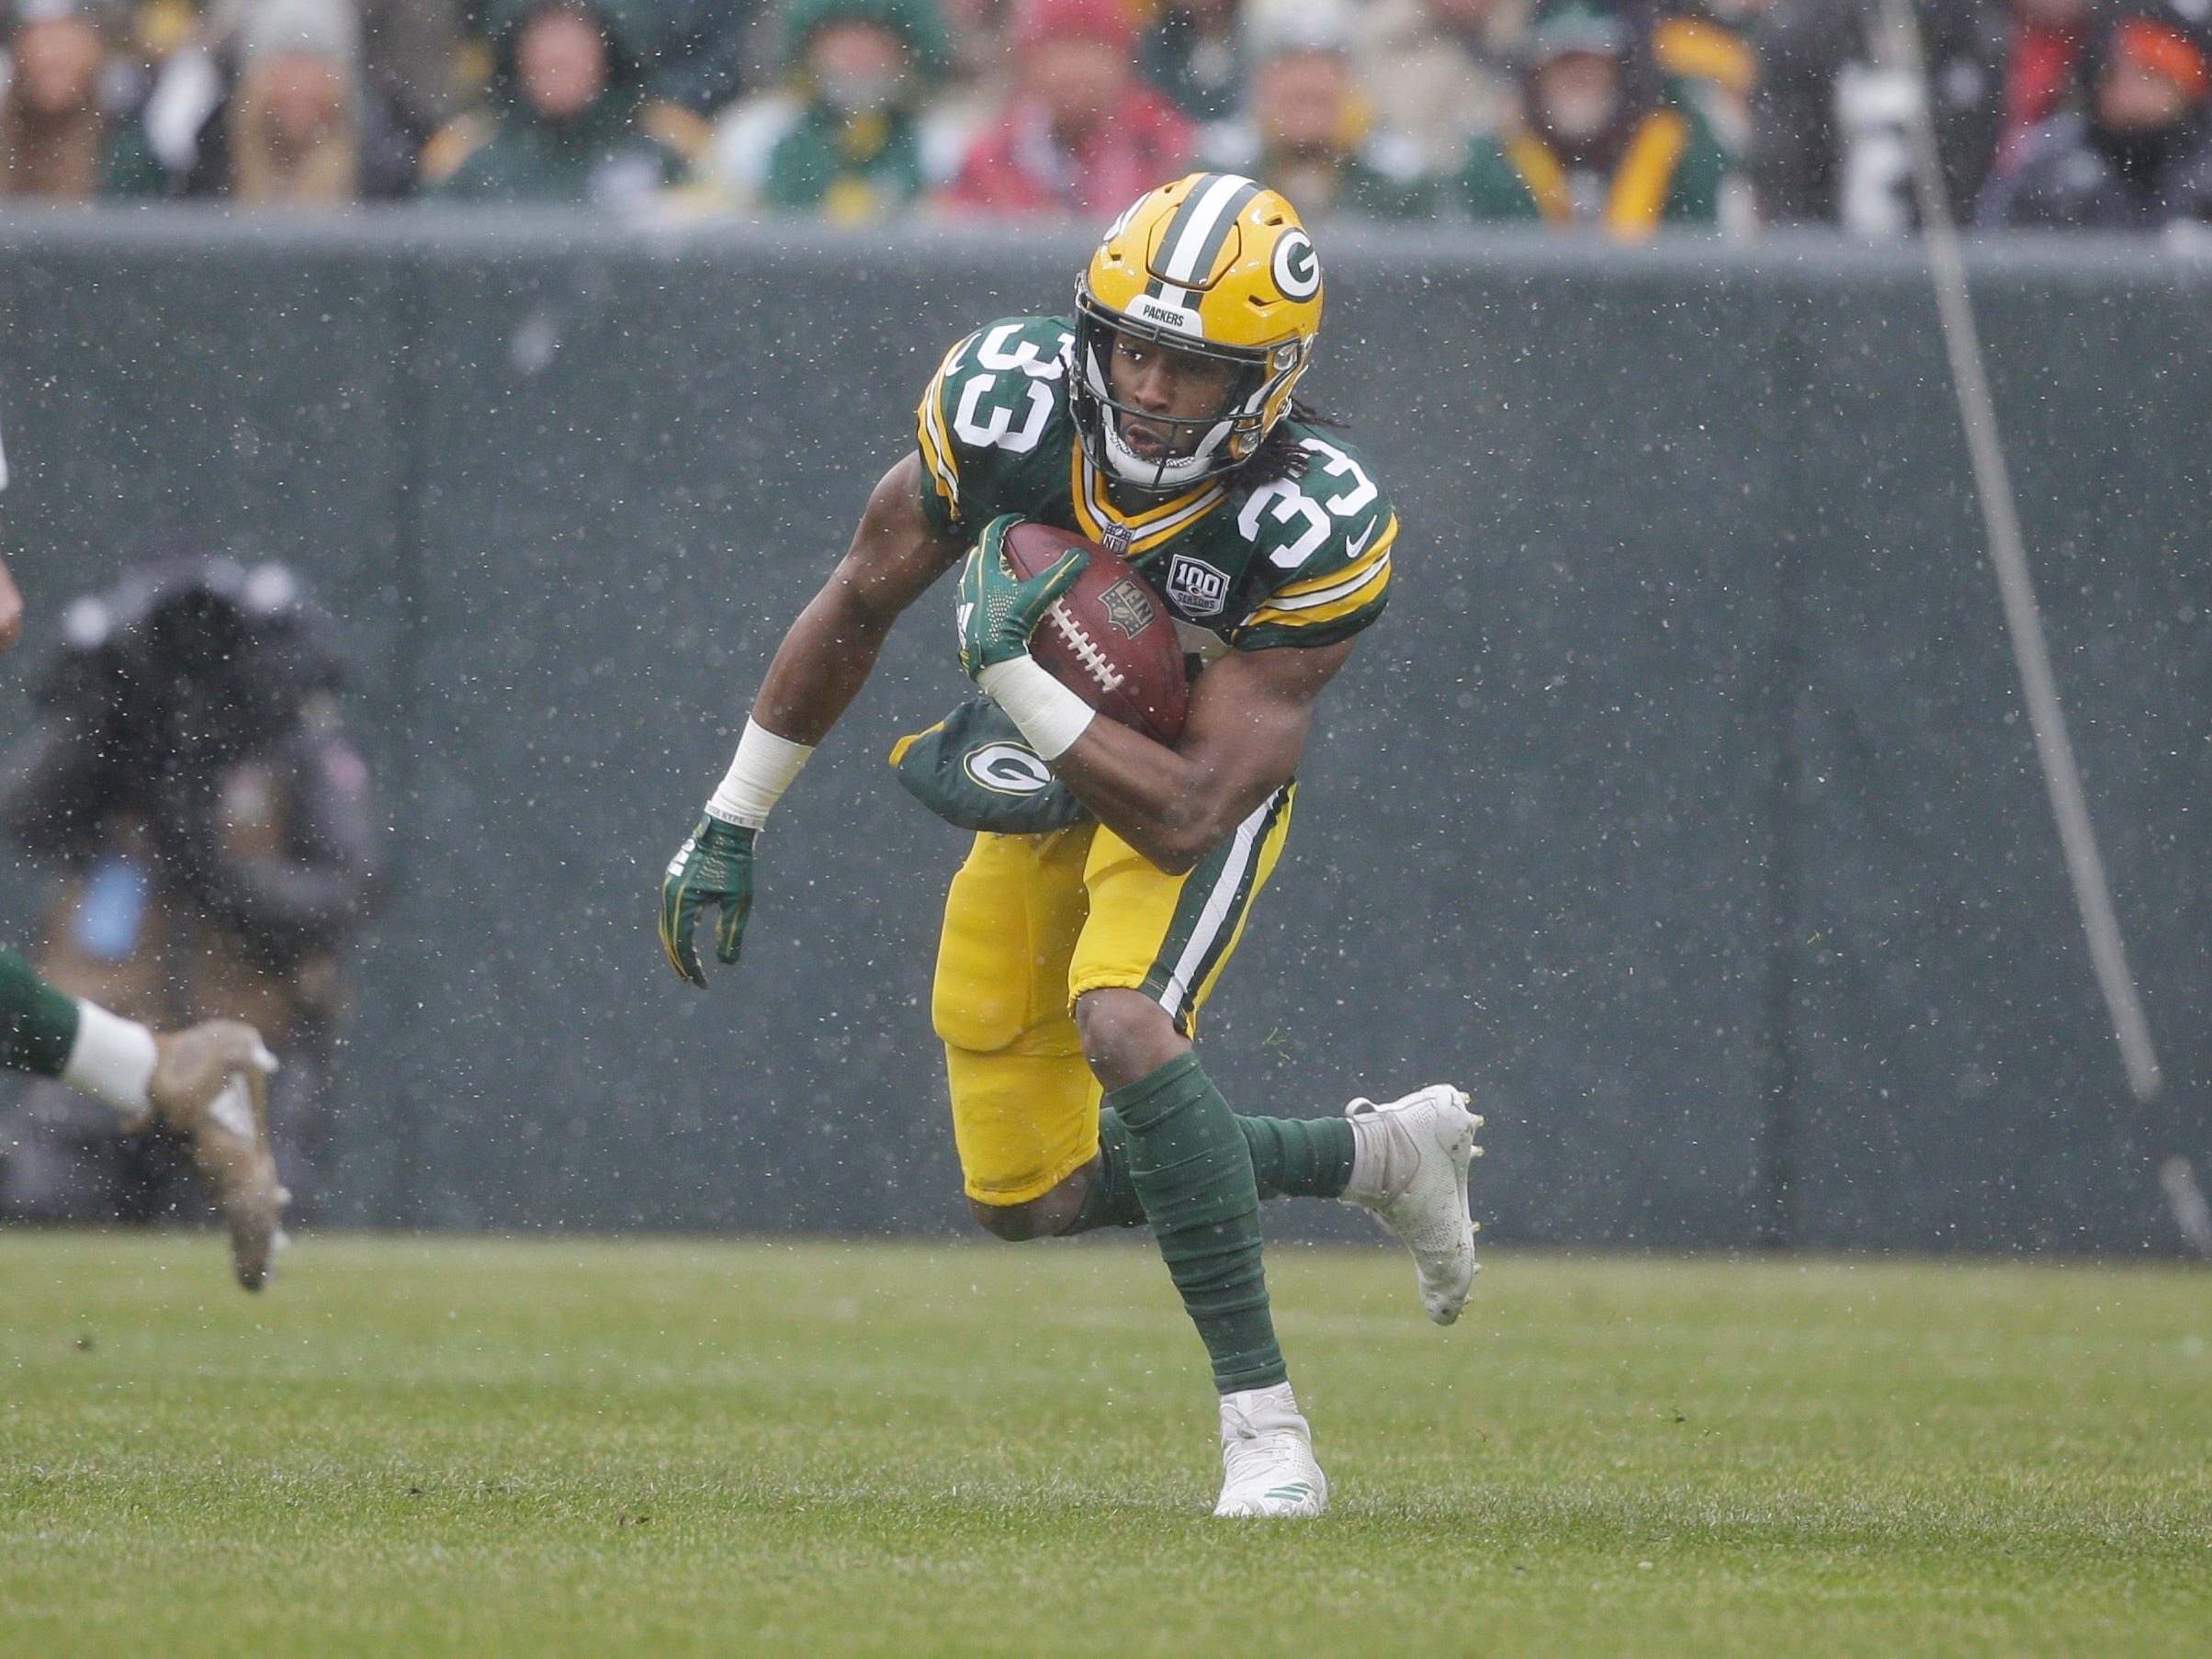 Green Bay Packers running back Aaron Jones rushes during the first half of an NFL football game against the Arizona Cardinals Sunday, Dec. 2, 2018, in Green Bay, Wis. (AP Photo/Jeffrey Phelps)